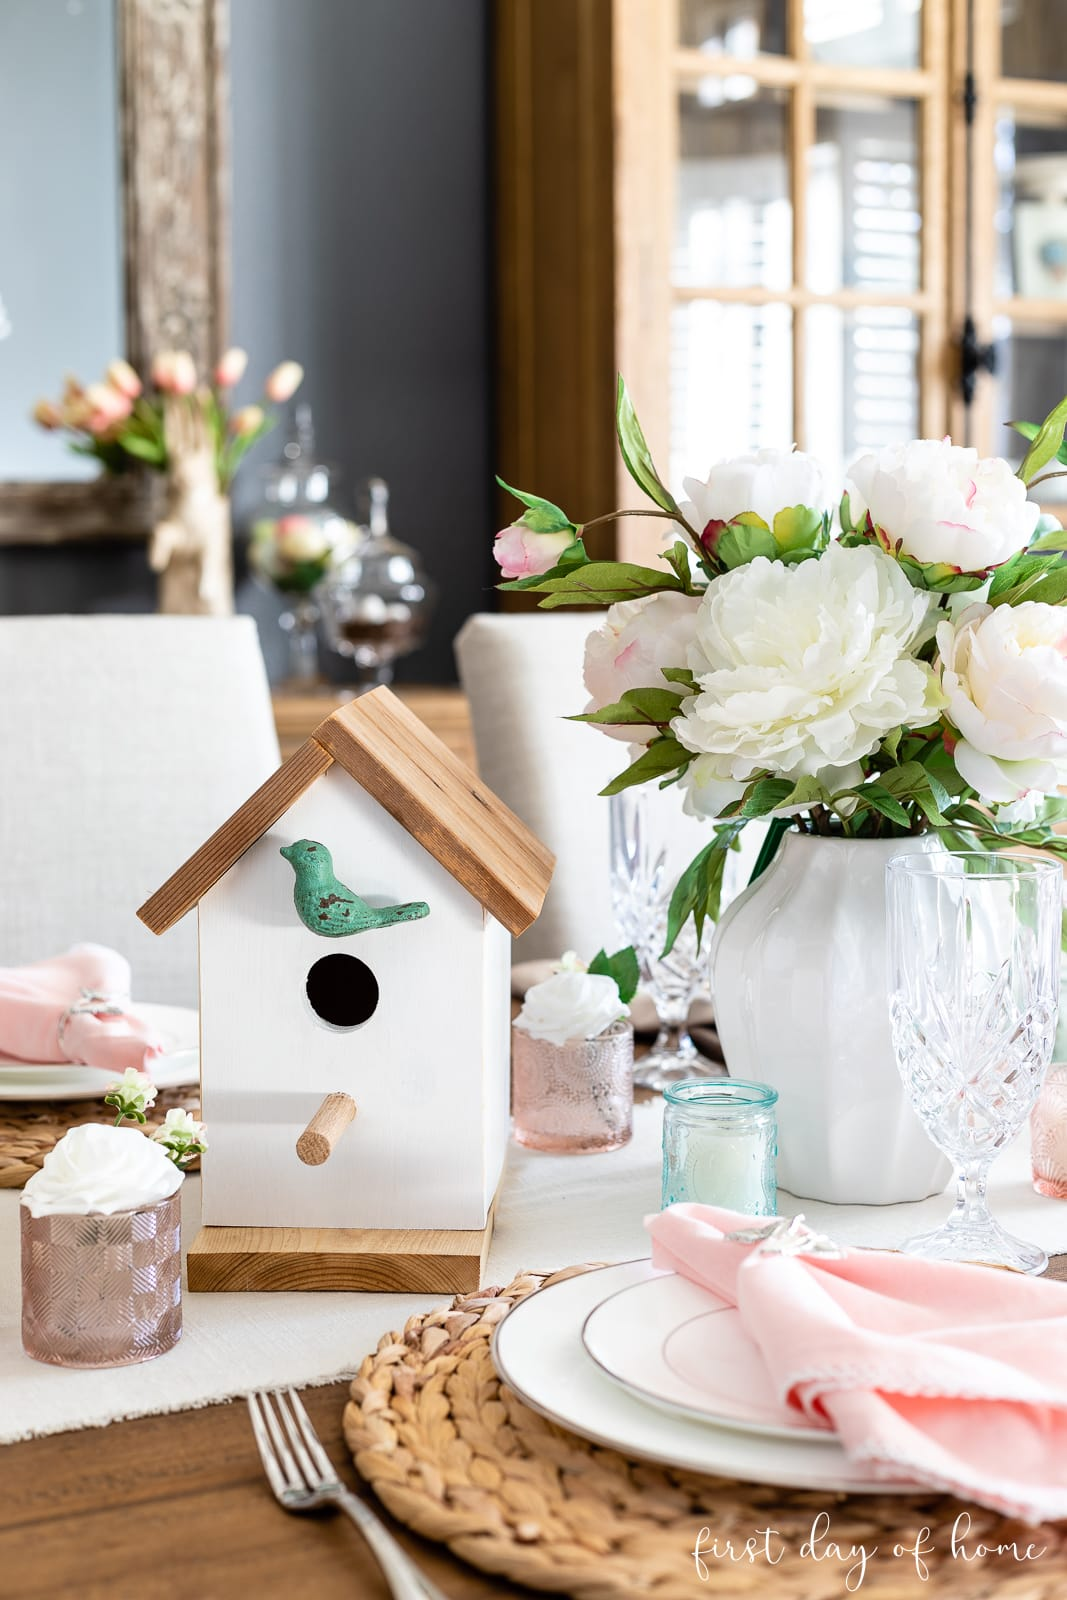 Spring table decor with birdhouse and floral arrangement as centerpiece with pastel pink and blue accents